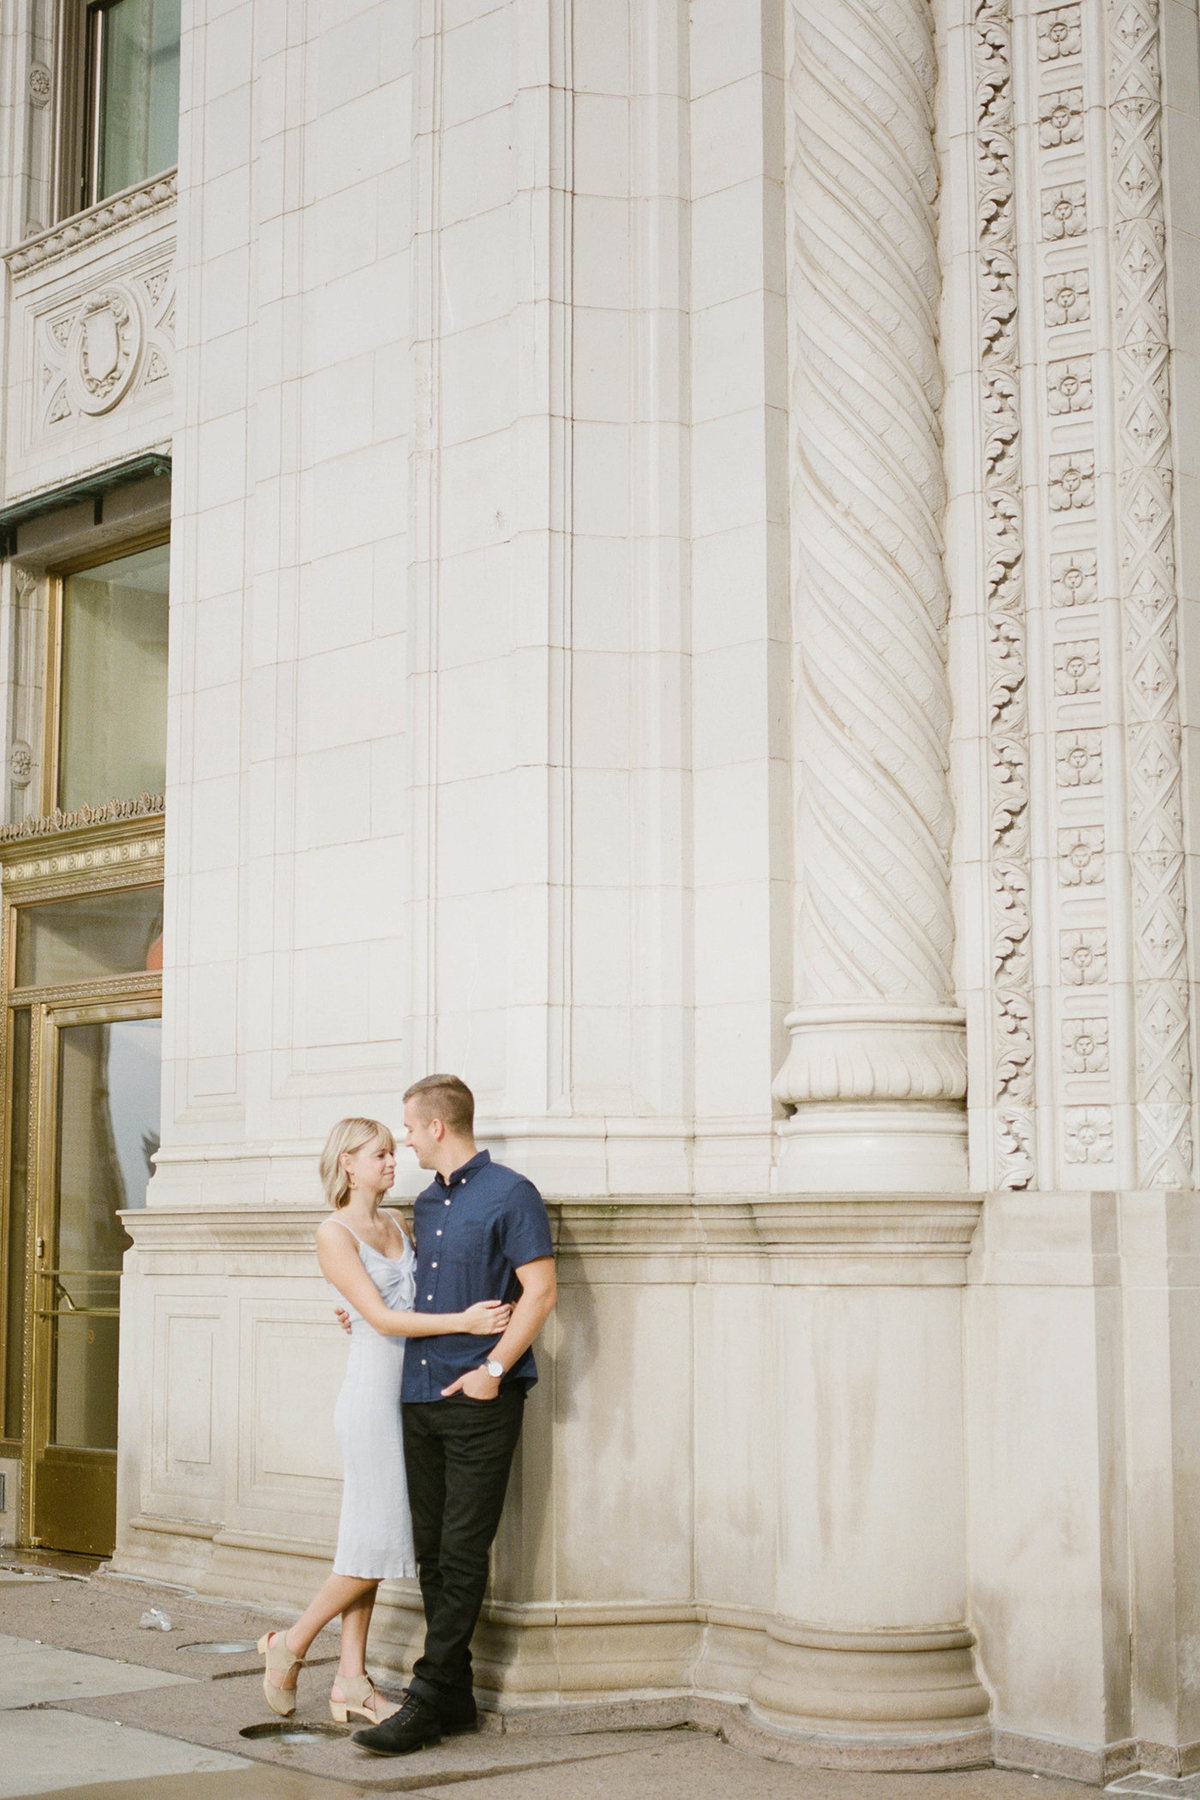 Chicago Wedding Photographer - Fine Art Film Photographer - Sarah Sunstrom - Sam + Morgan - Engagement Session - 23